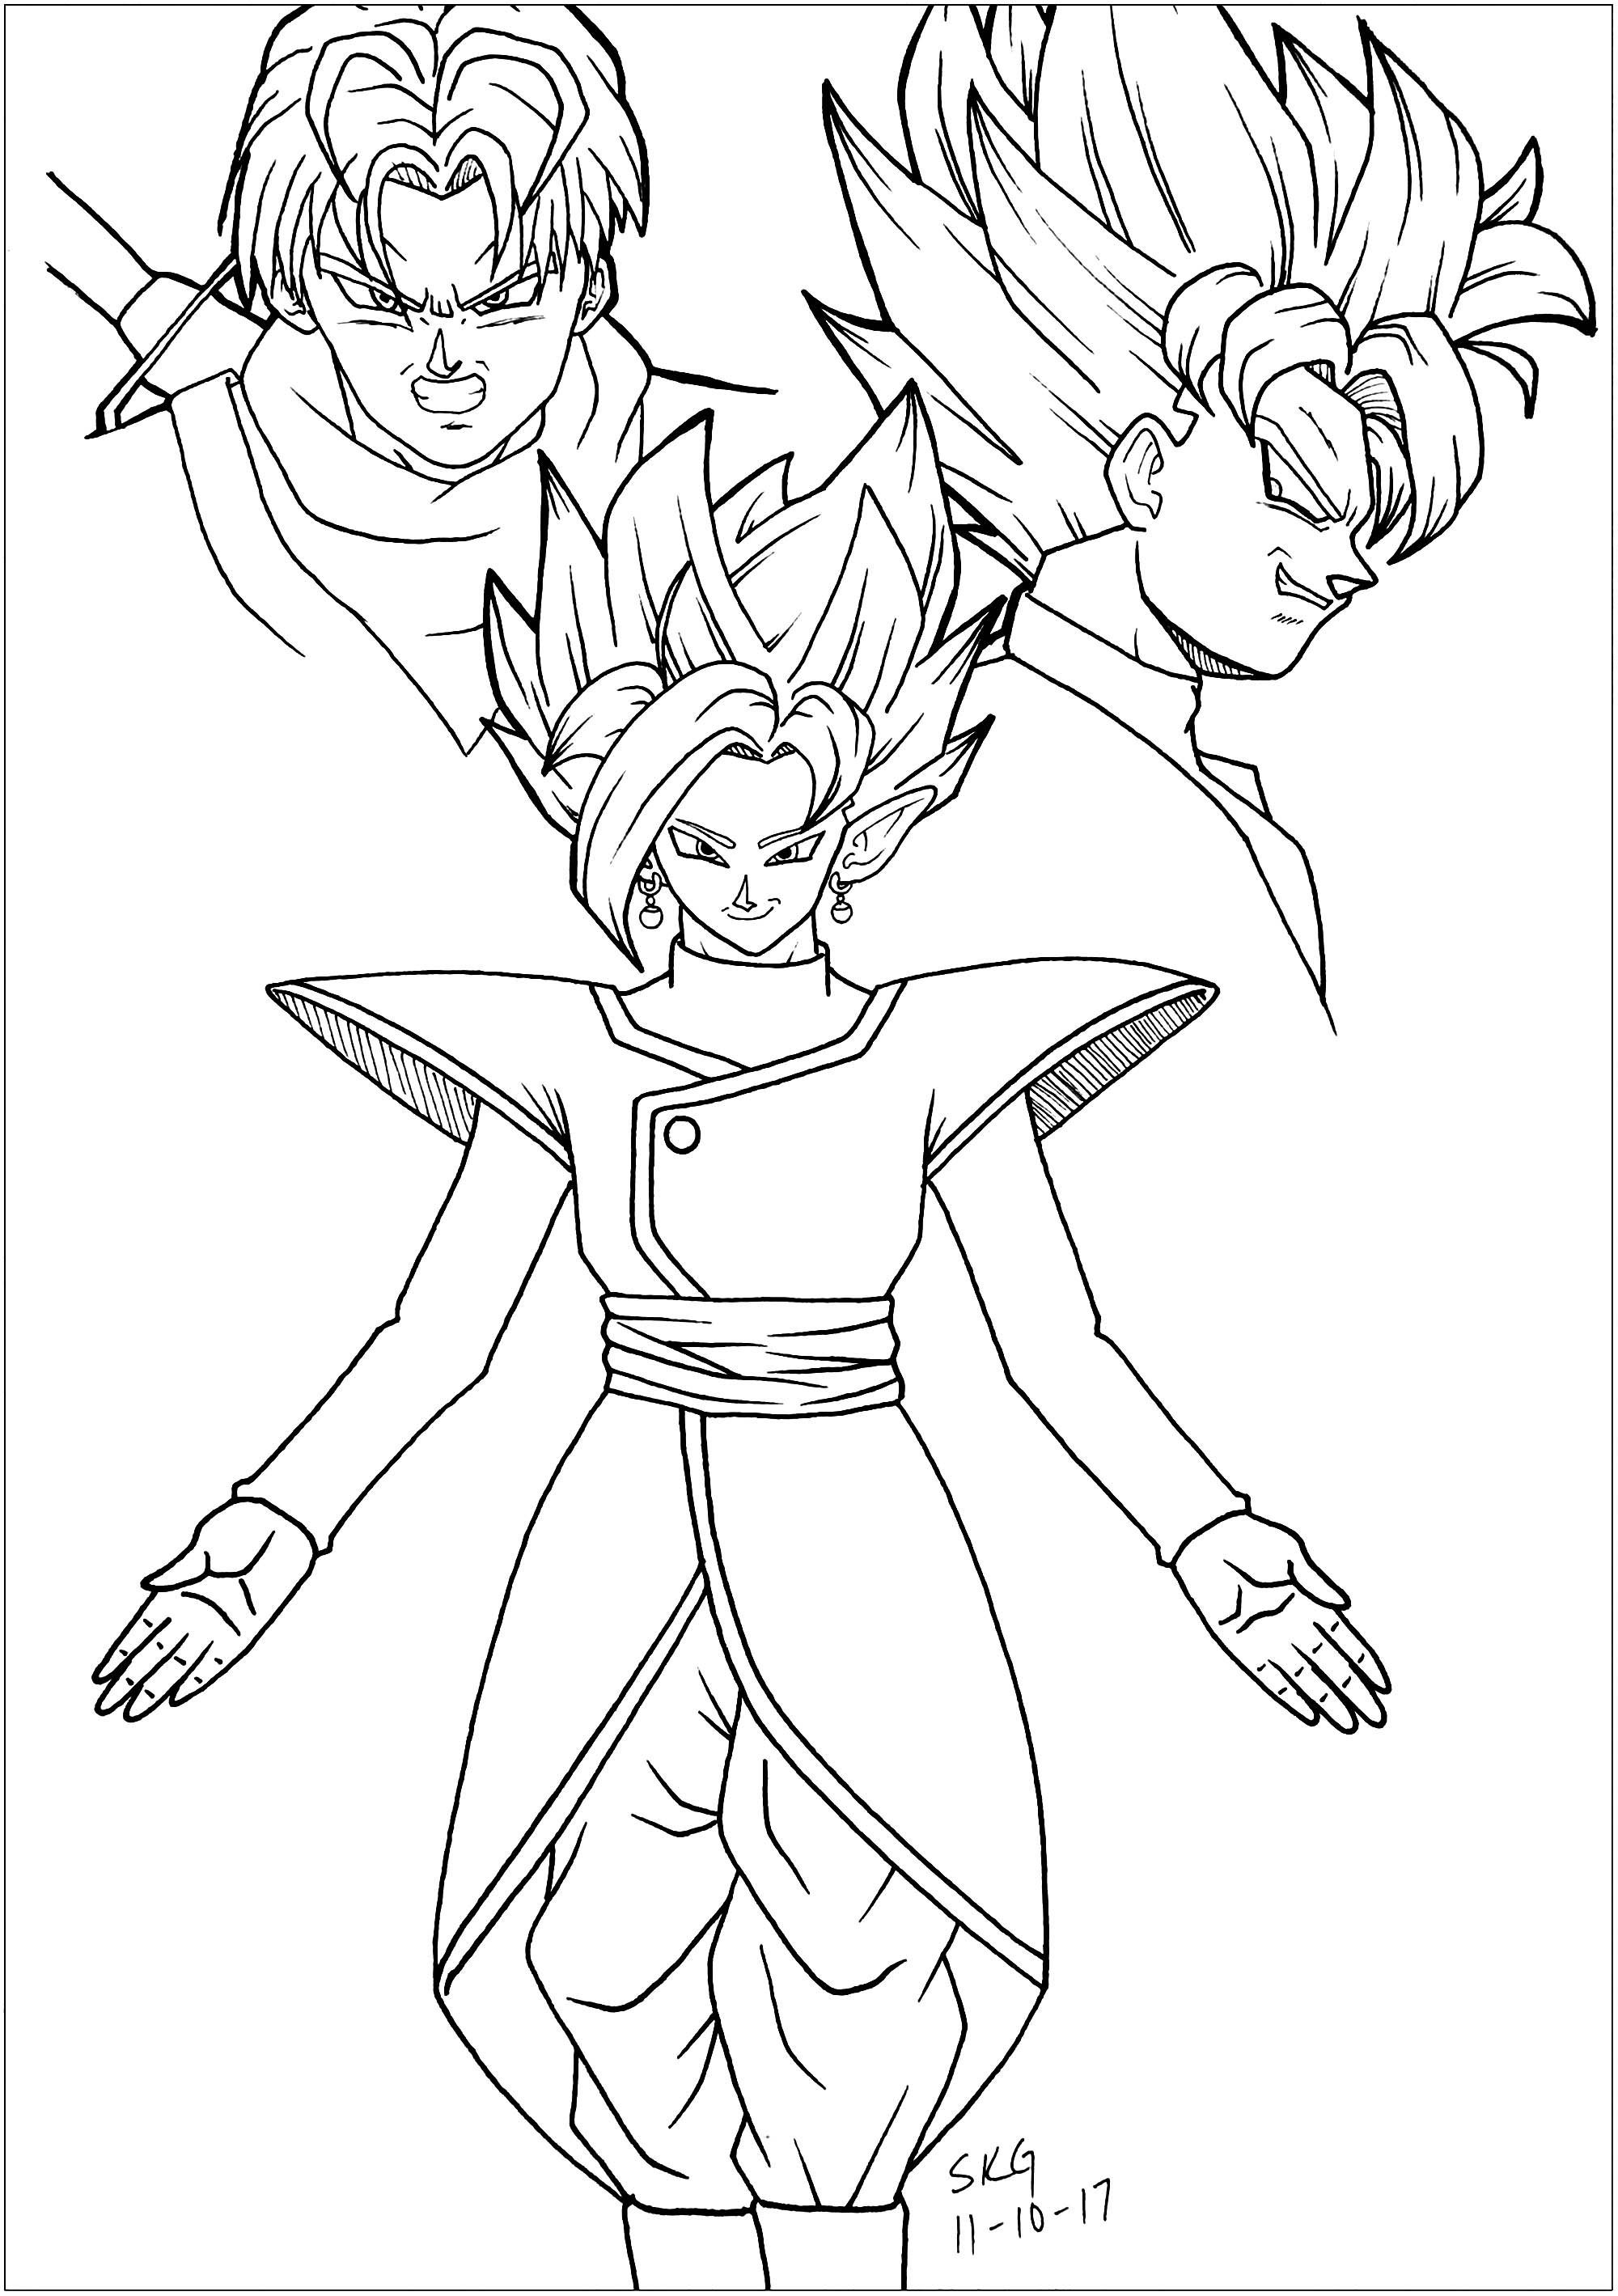 dragon ball z color best goku black coloring pages powell website dragon ball z color